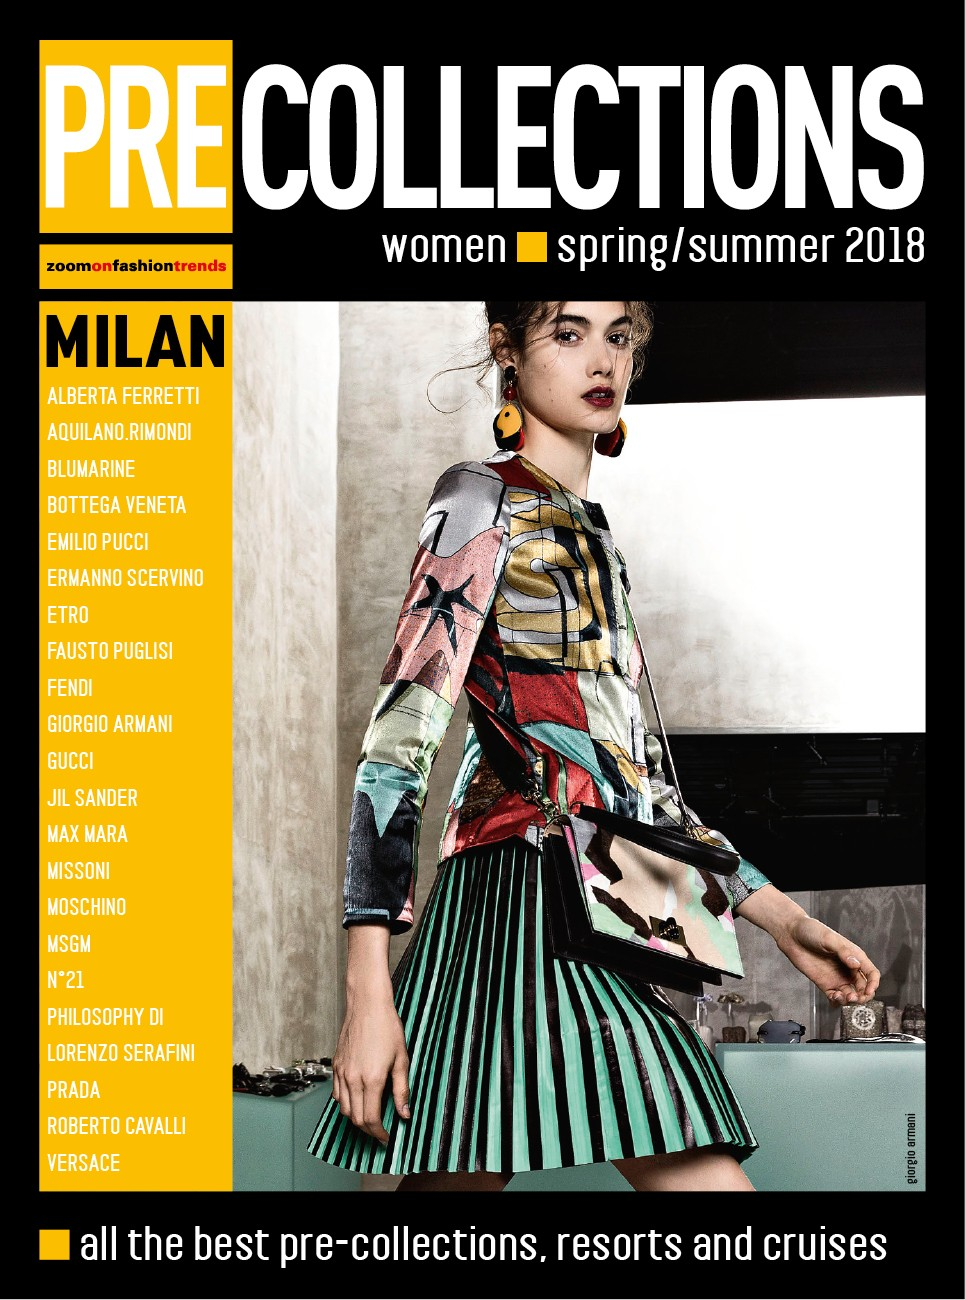 PRE-COLLECTIONS MILAN